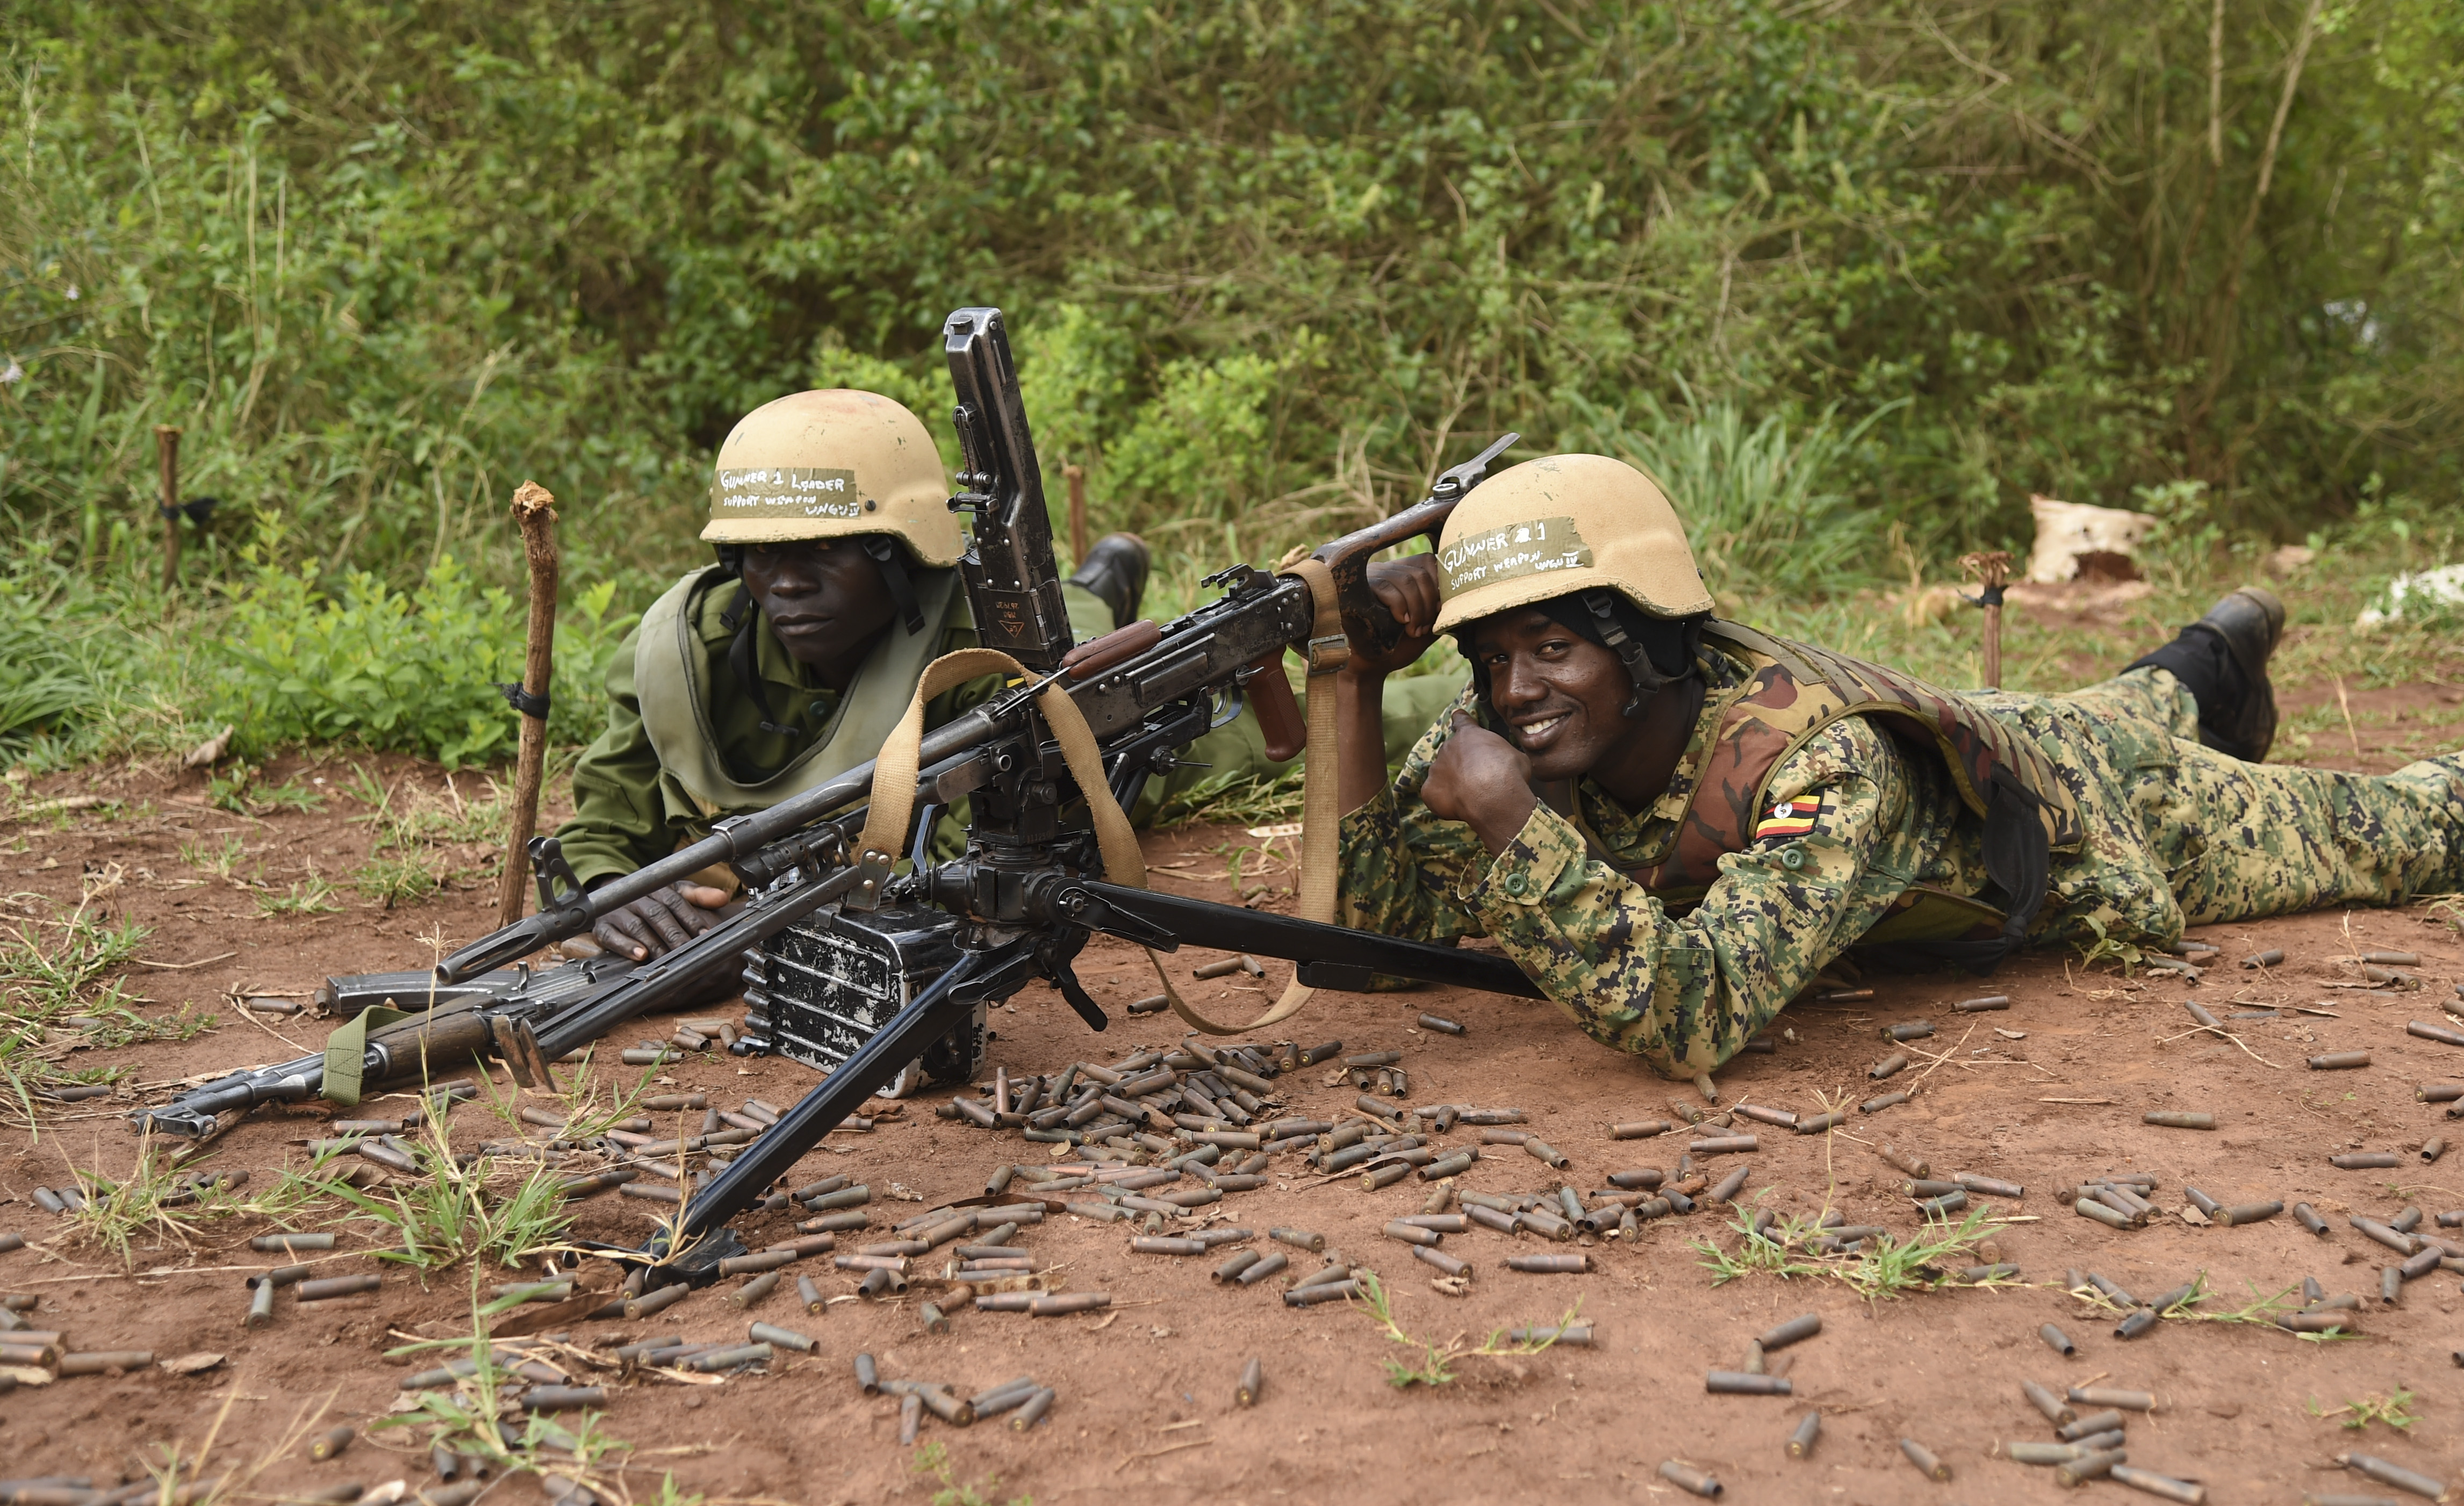 Uganda People's Defense Force soldiers, Ugandan Battle Group 22 (UGABAG 22), wait behind their weapons after a live fire exercise at Camp Singo, Uganda, Feb. 27, 2017. UGABAG 22 will perform common task training, a combat lifesaver course, counter improvised-explosive-device training, and live fire training as a part of their pre-deployment preparation. (U.S. Air National Guard photo by Staff Sgt. Penny Snoozy)